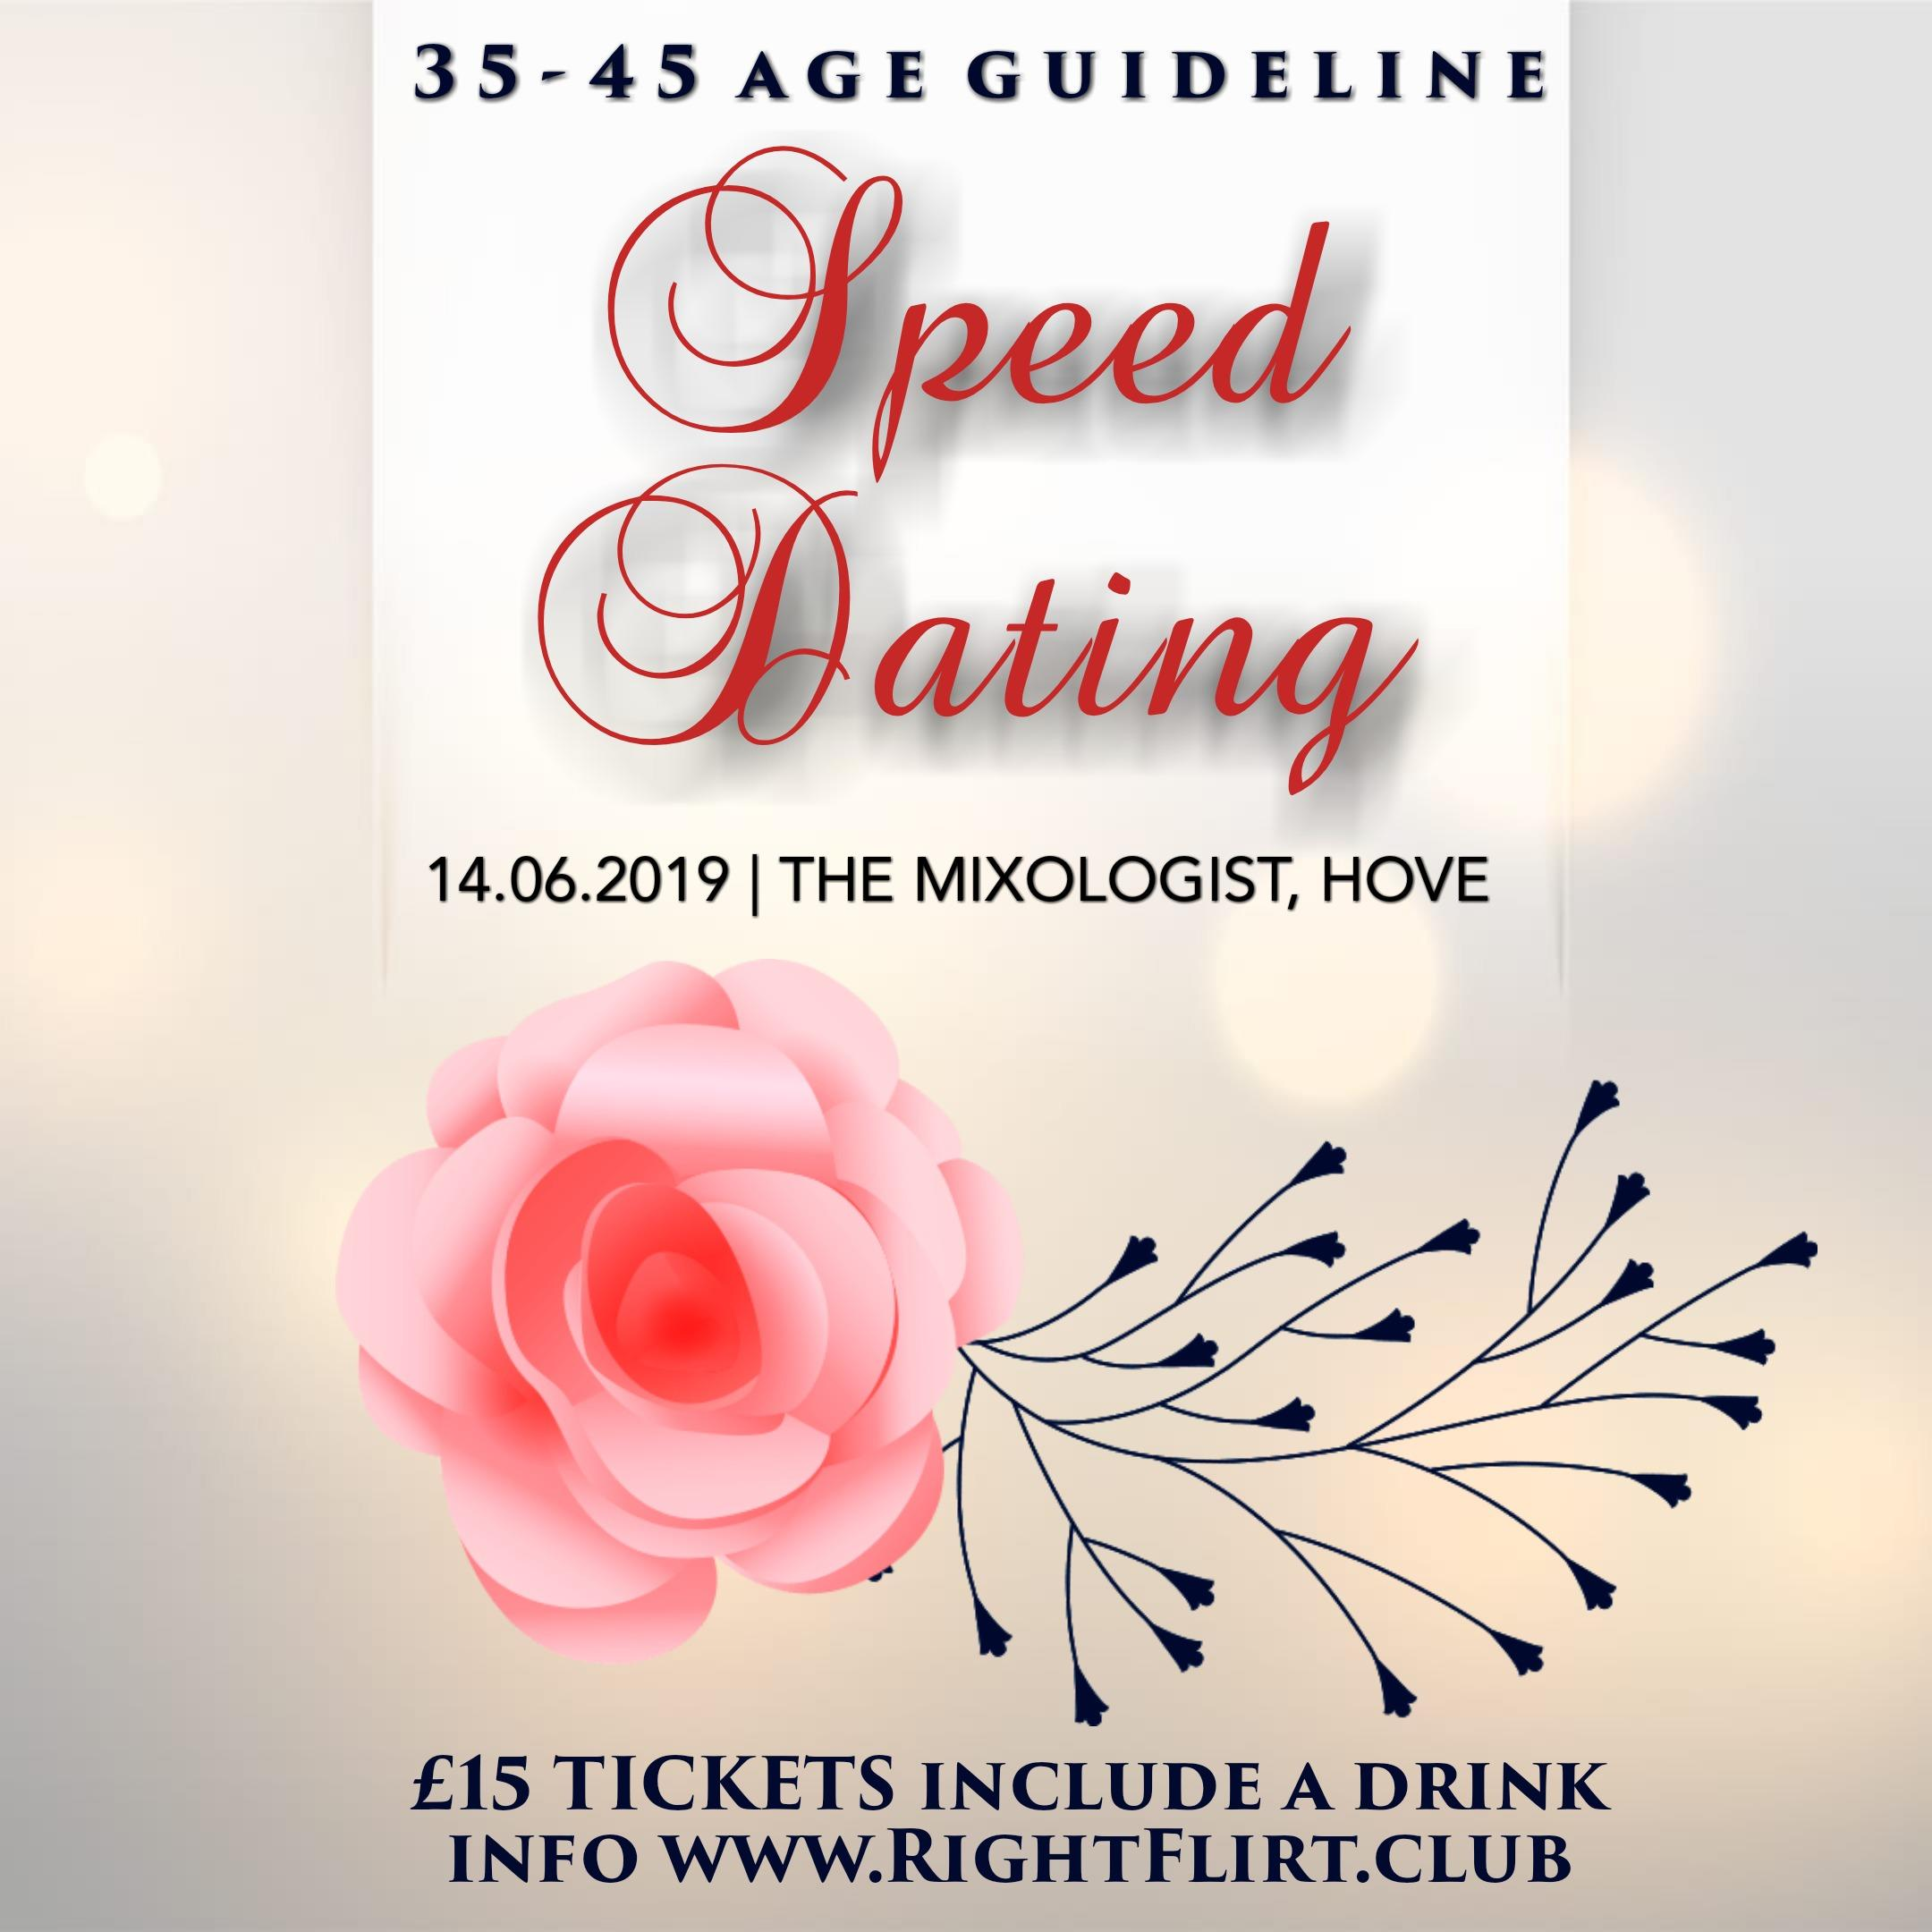 Speed dating uxbridge